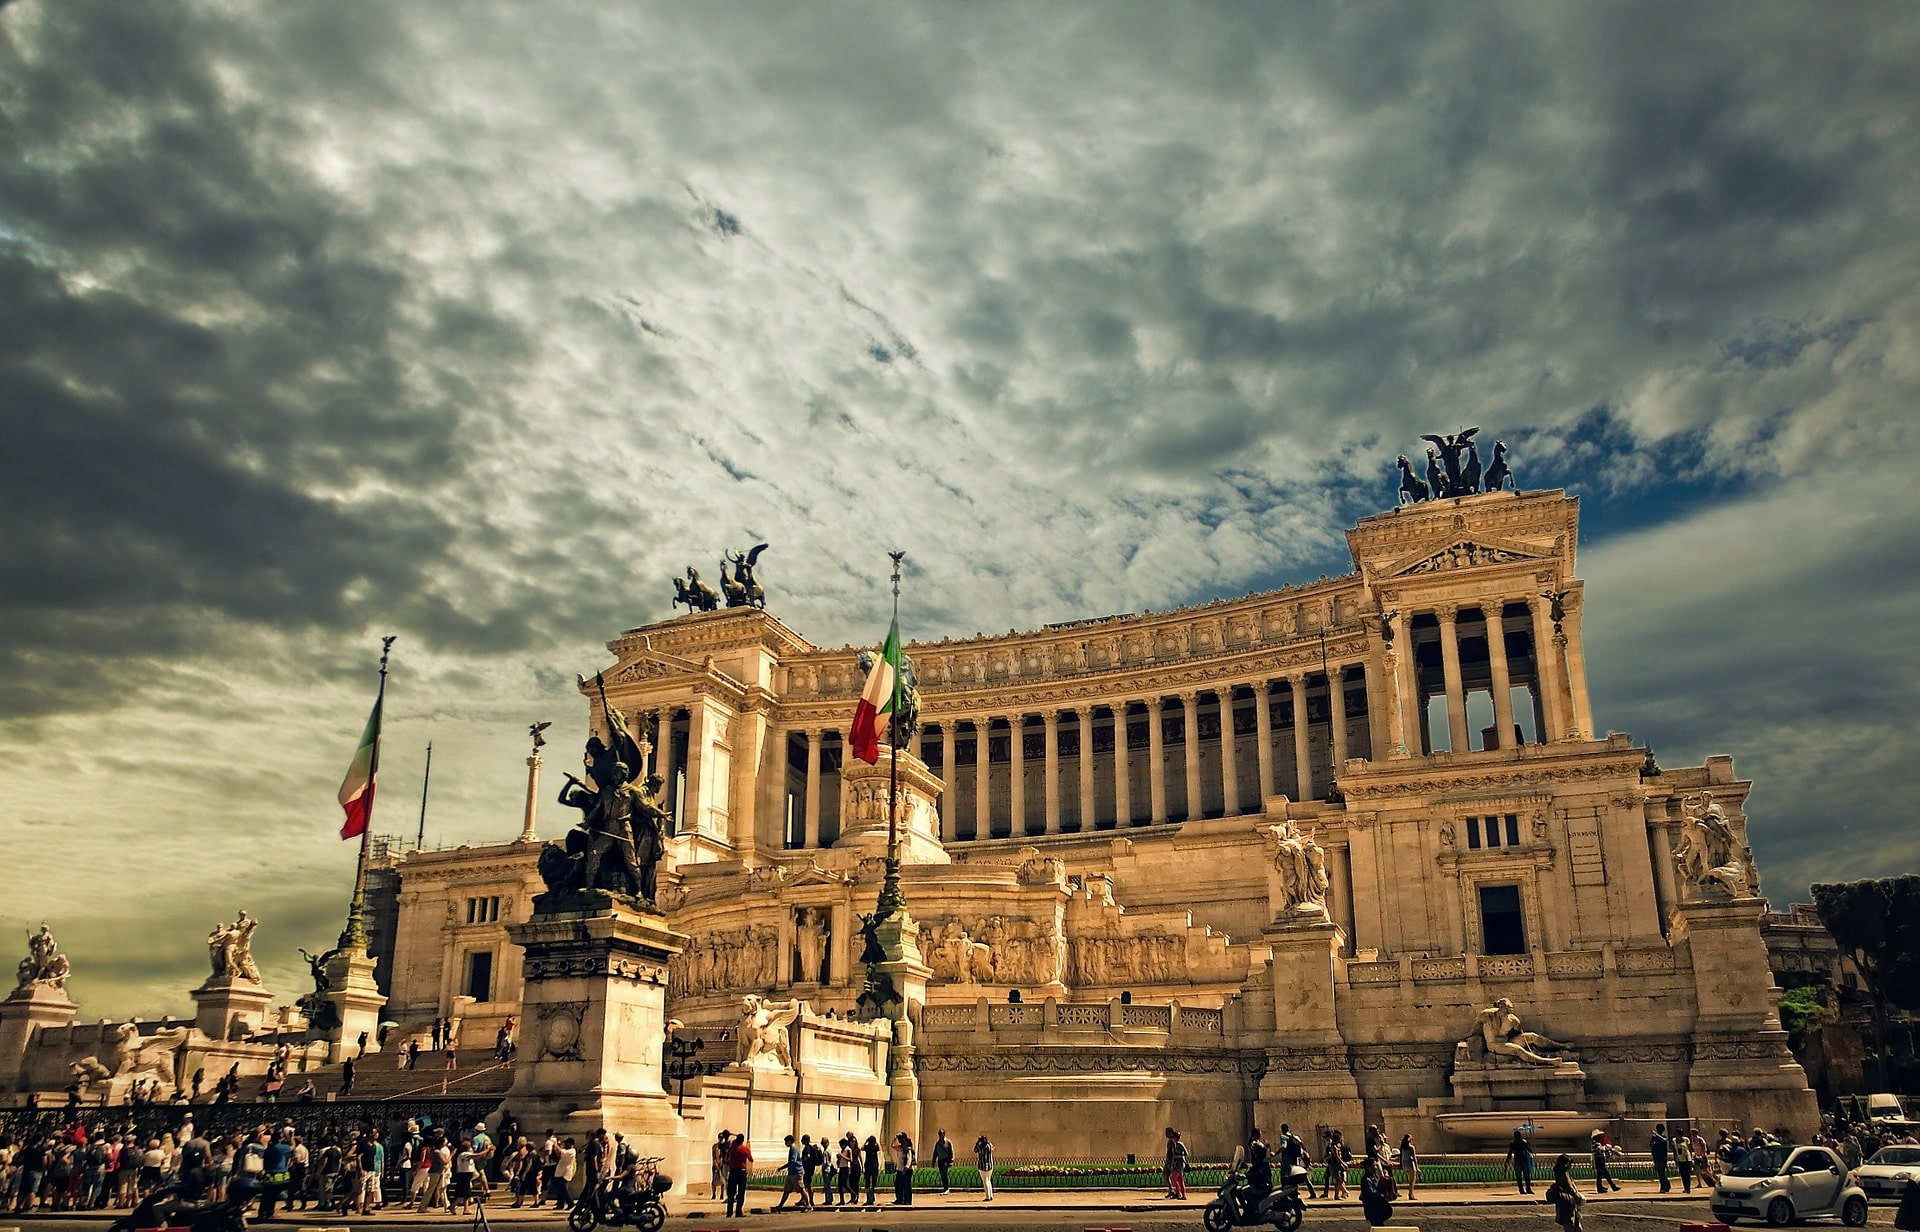 Rome is one of the best places to visit in Italy